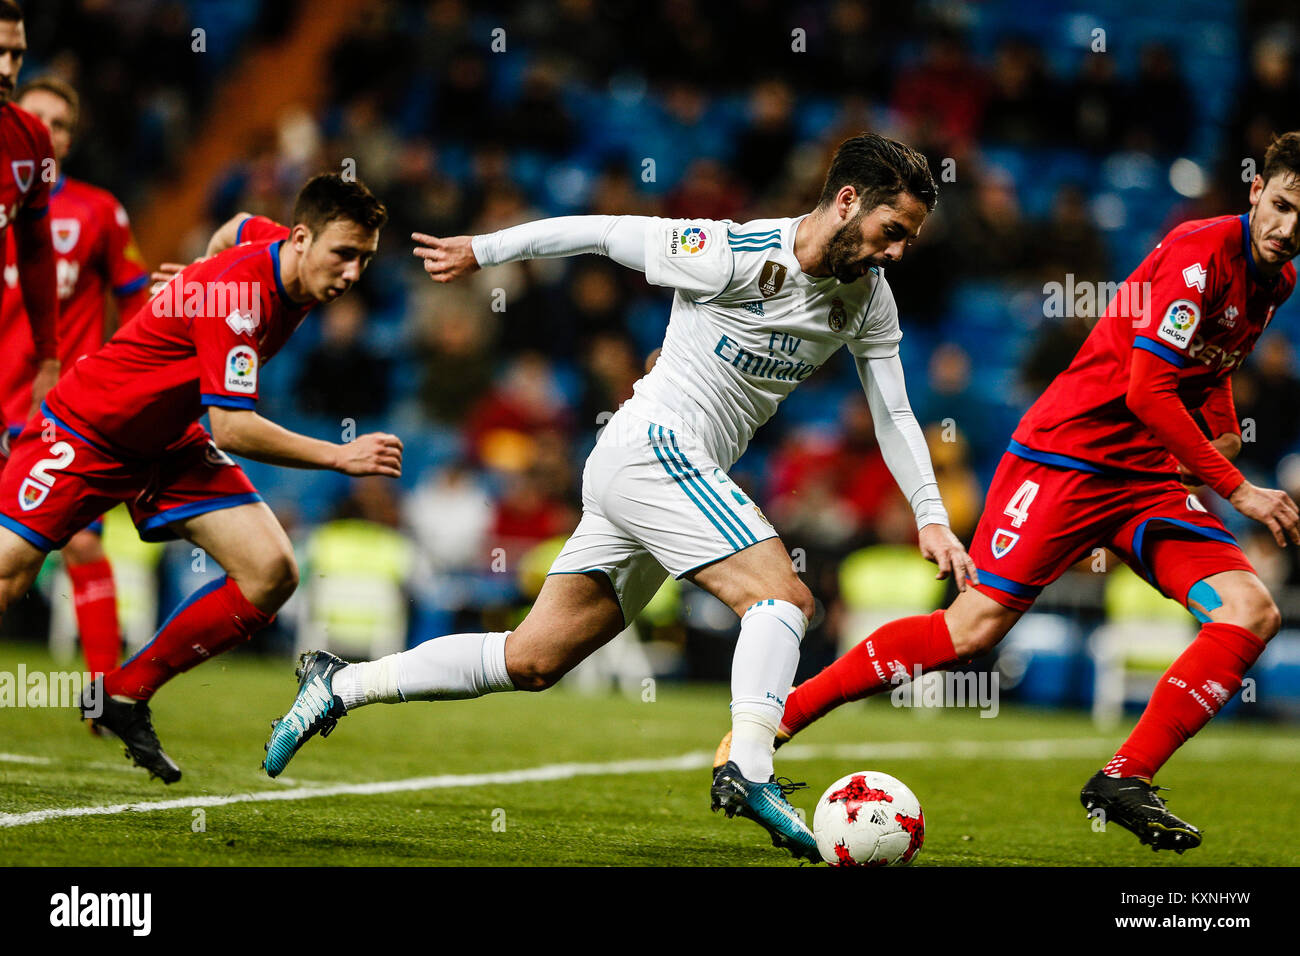 Madrid, Spain. 10th Jan, 2018. Francisco Alarcon (Real Madrid) controls the ball Copa del Rey match between Real - Stock Image